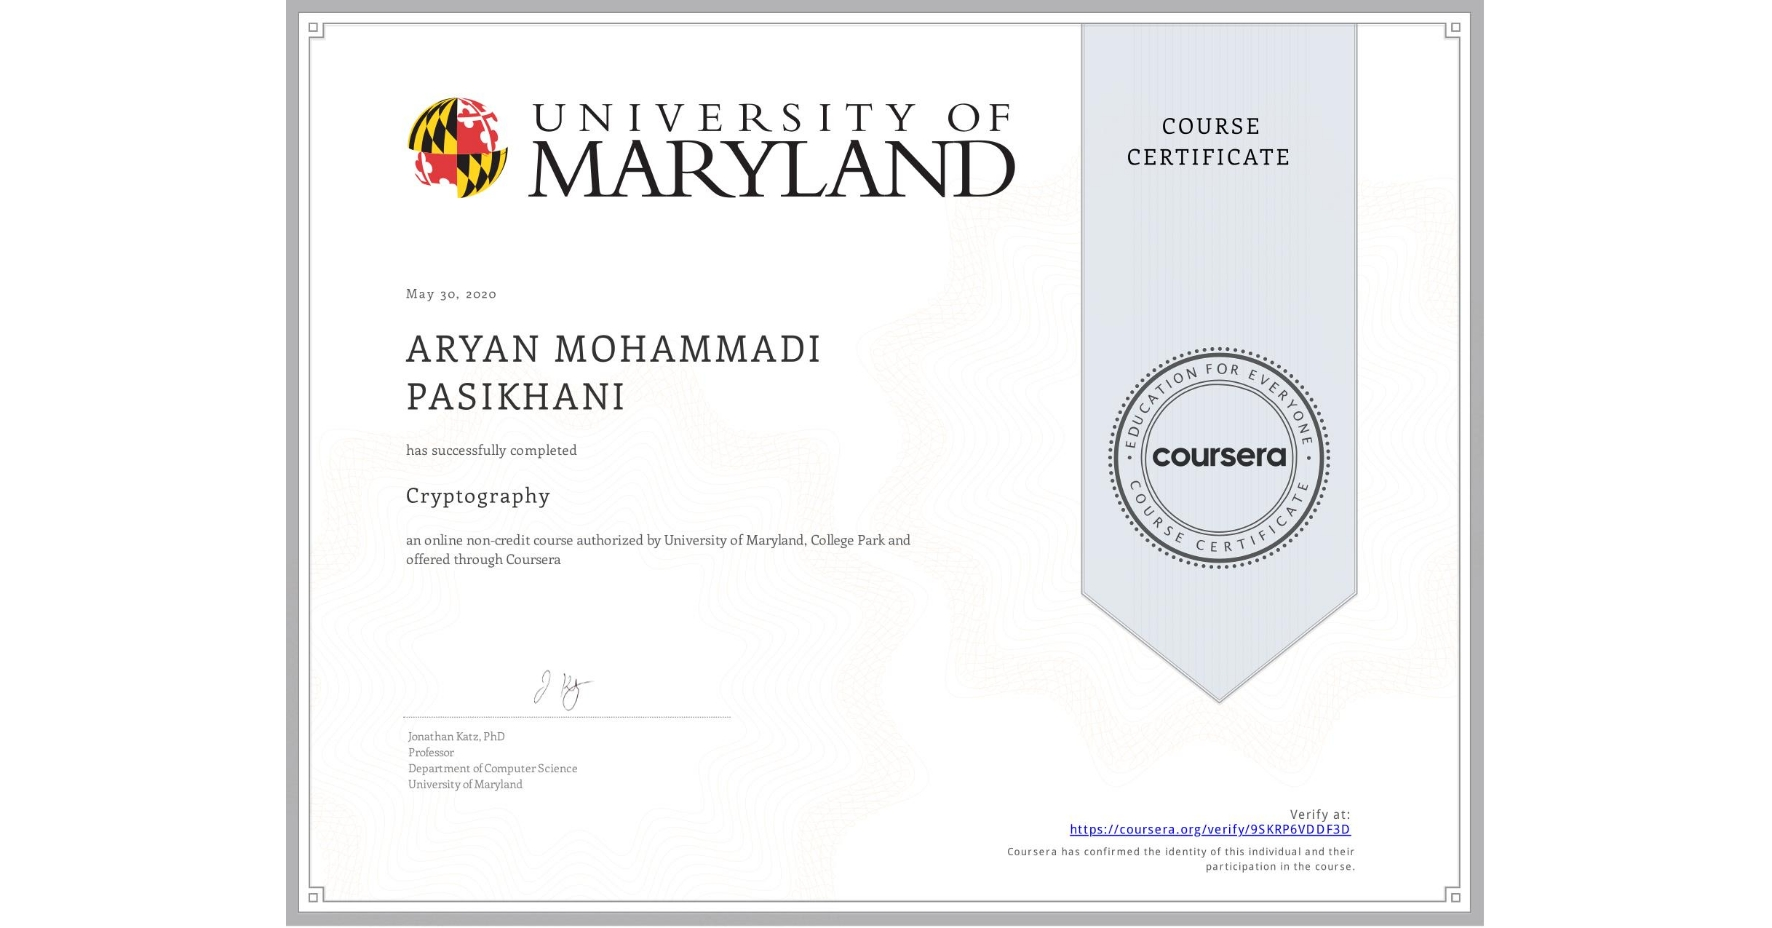 View certificate for ARYAN MOHAMMADI PASIKHANI, Cryptography, an online non-credit course authorized by University of Maryland, College Park and offered through Coursera